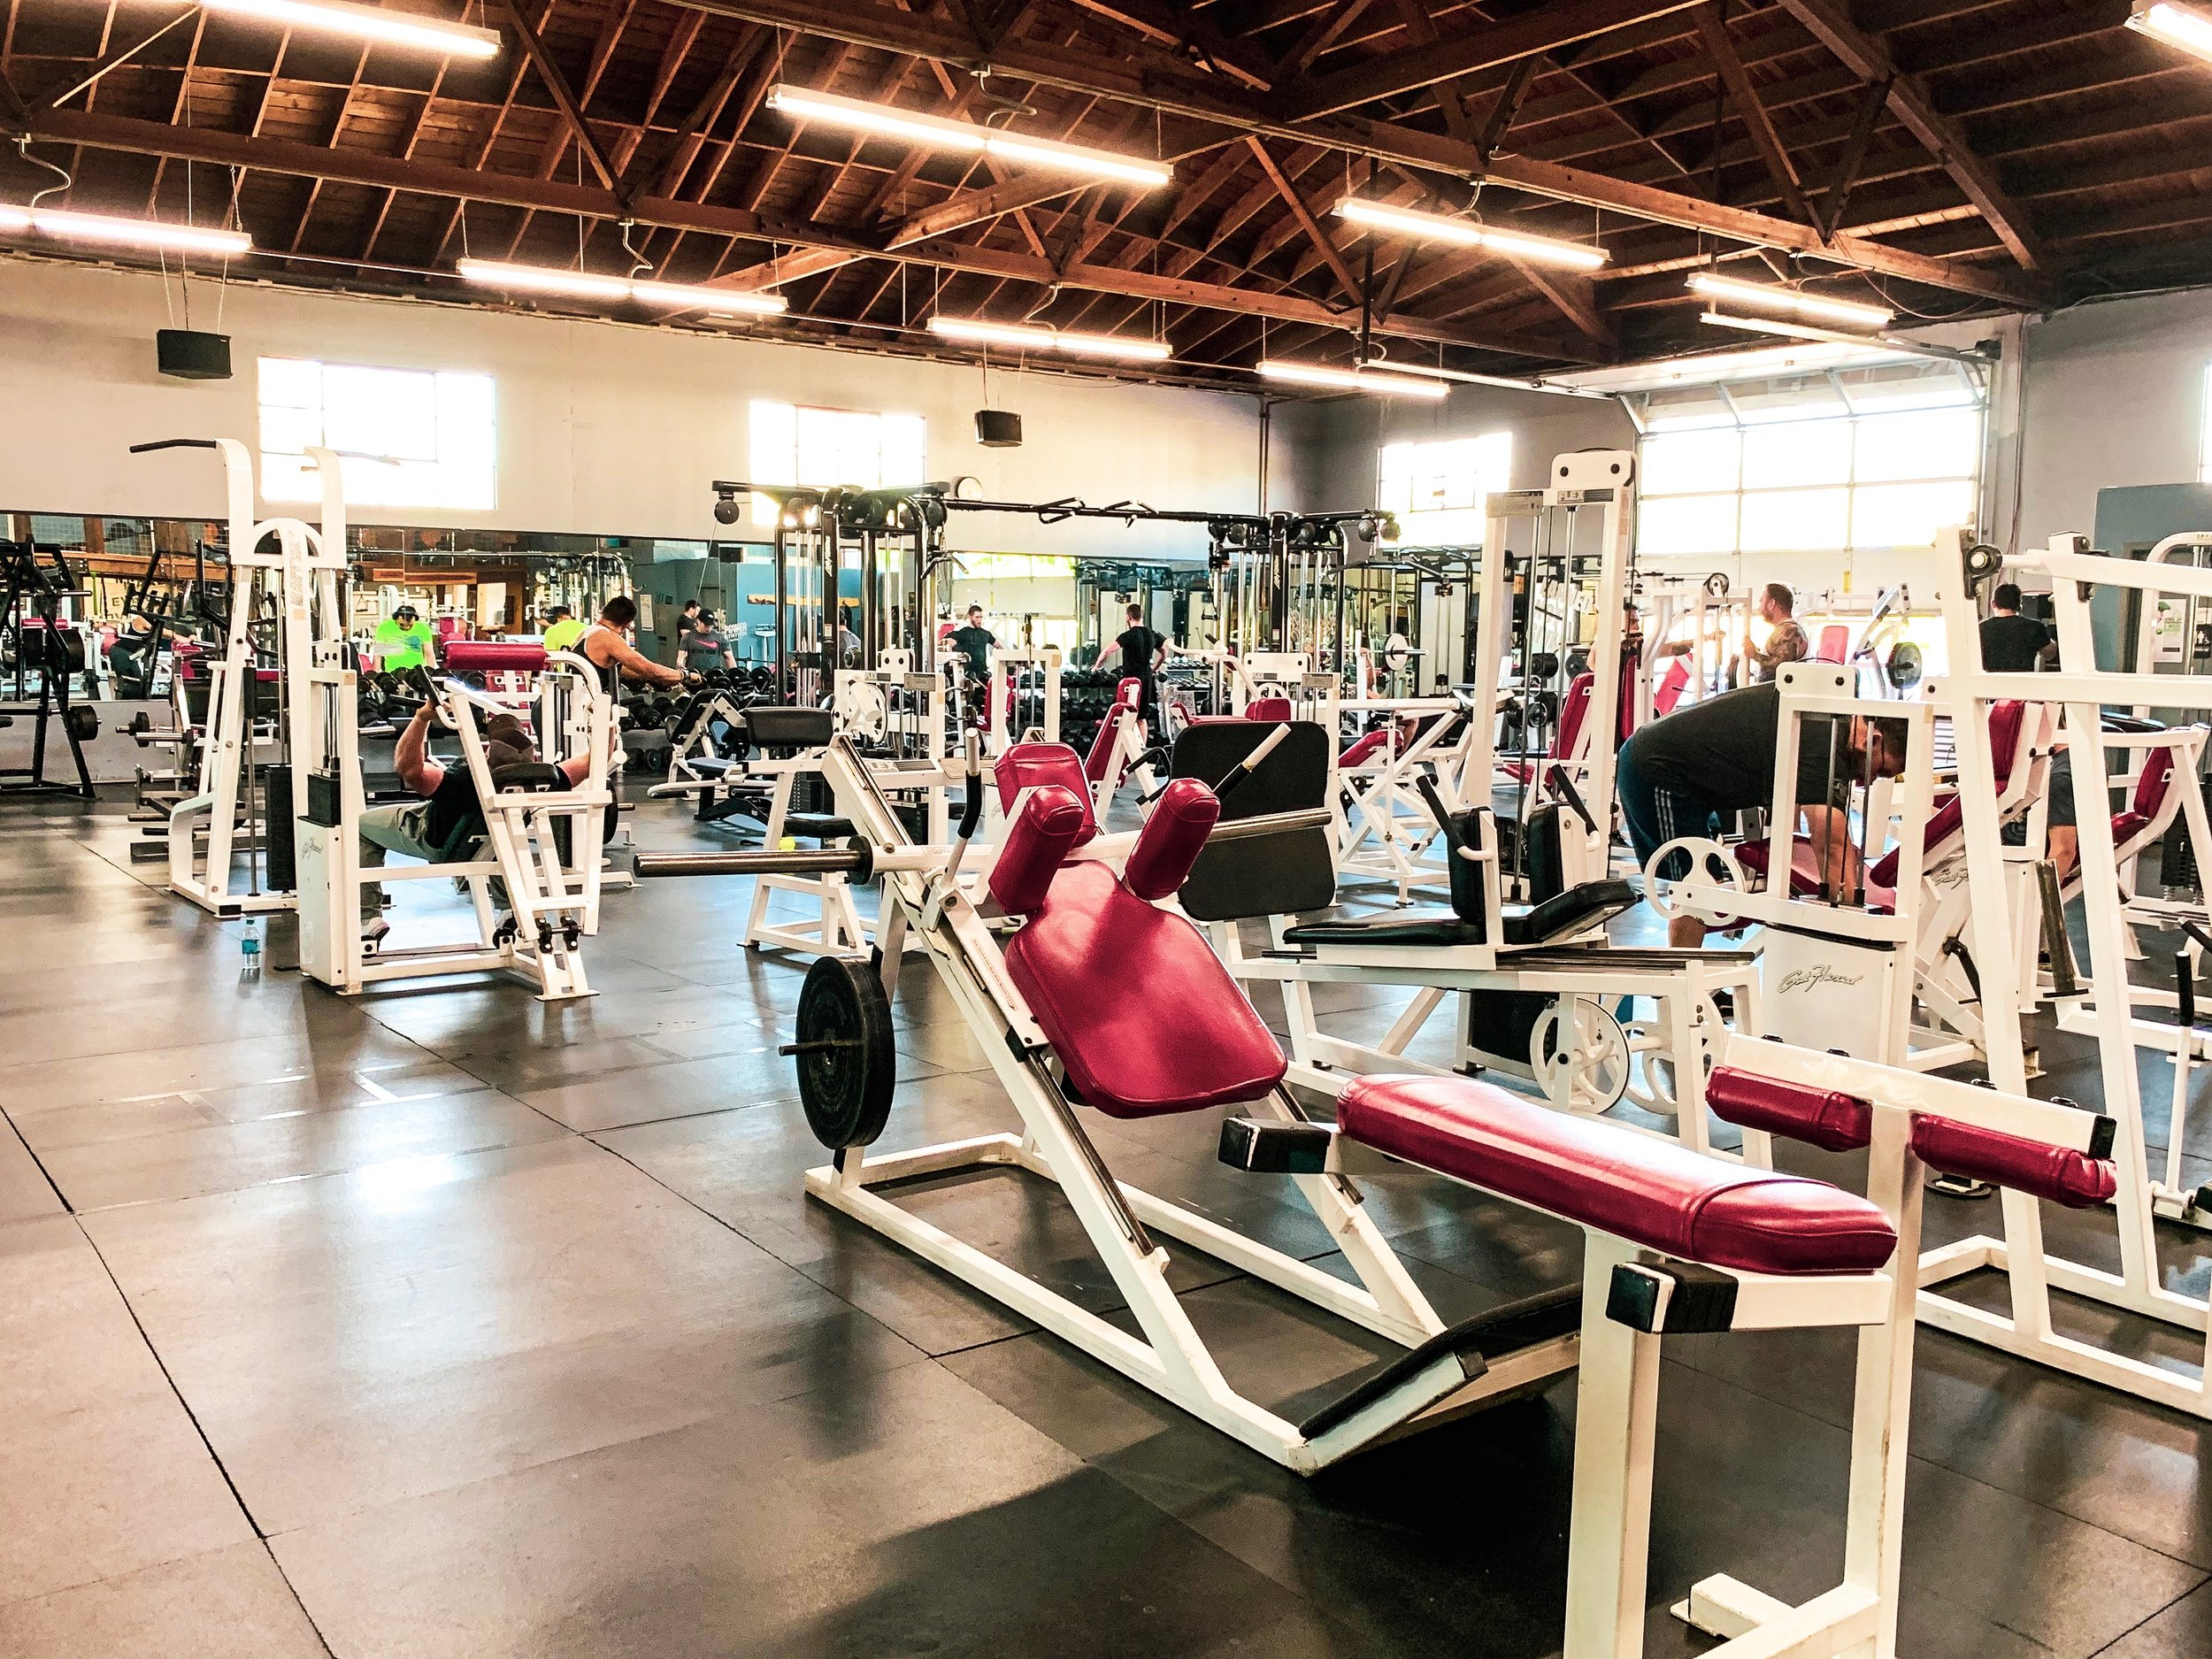 BASIC - Unlimited Open GymSTARTING AT $49/MONTH